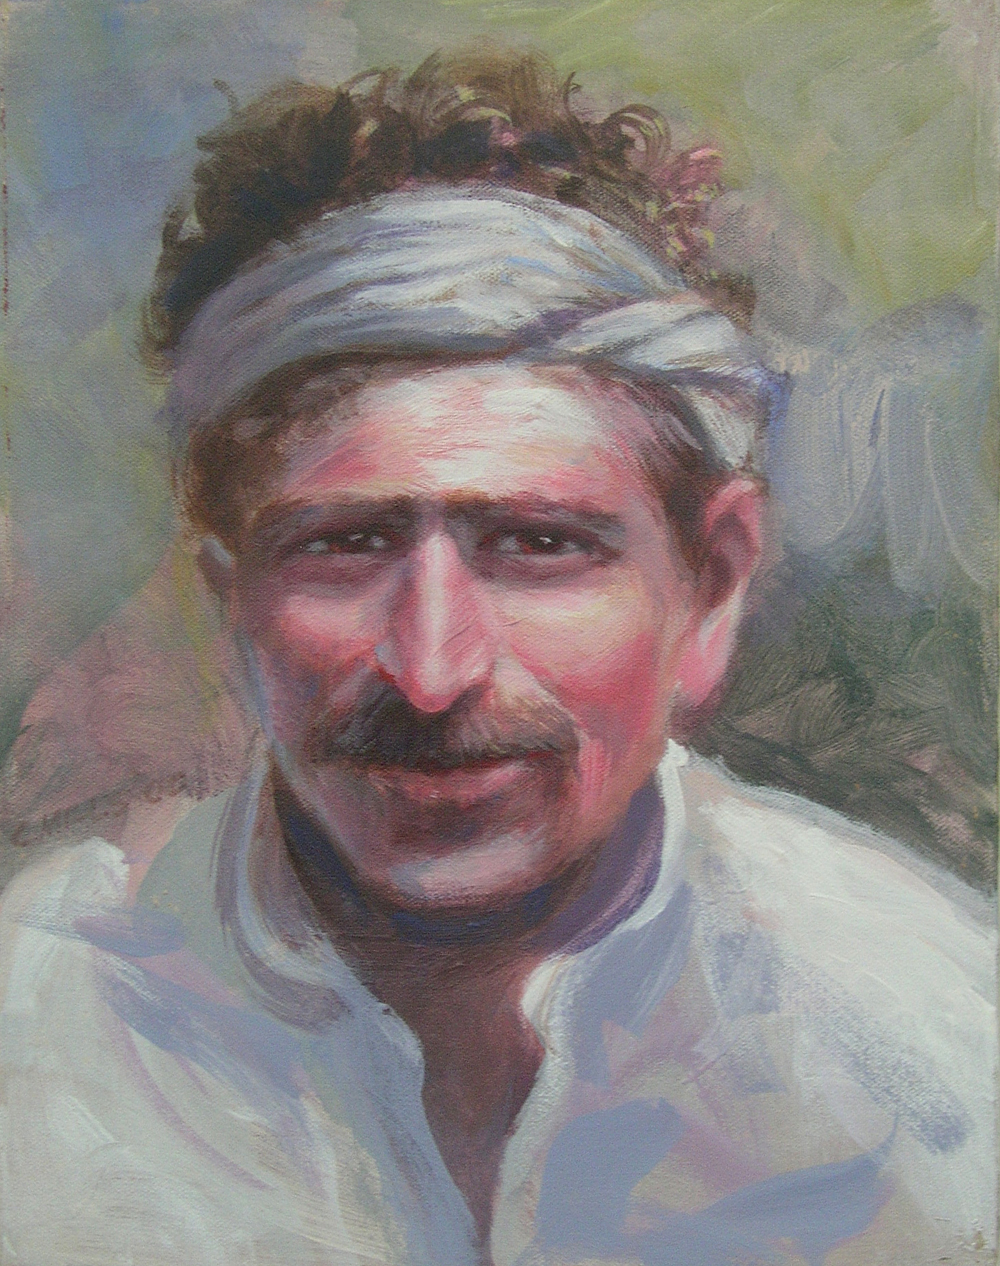 2000-4_At-Upasni's-(00-4)-Oil-14x11